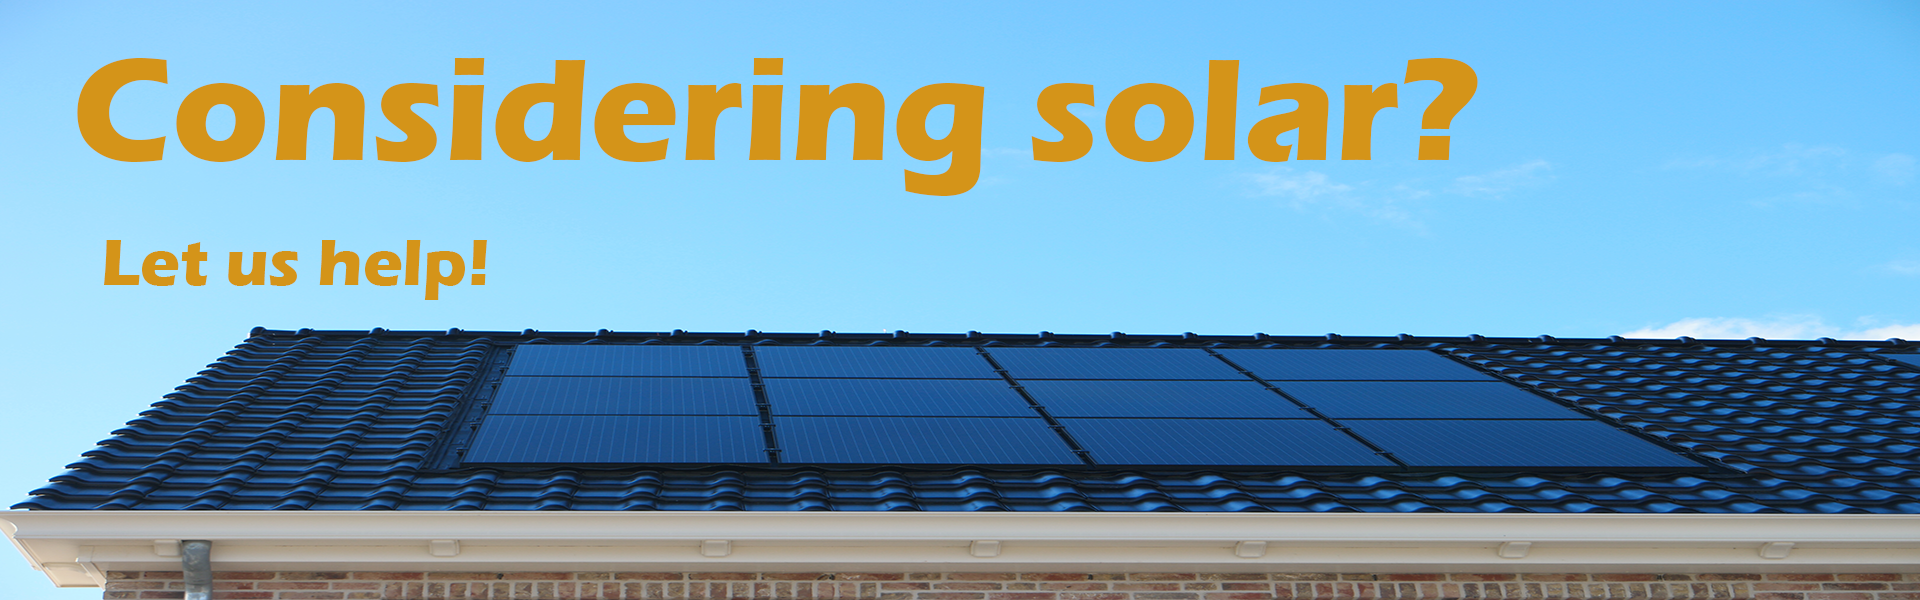 Slide of rooftop solar panels that links to our page about solar panel installations